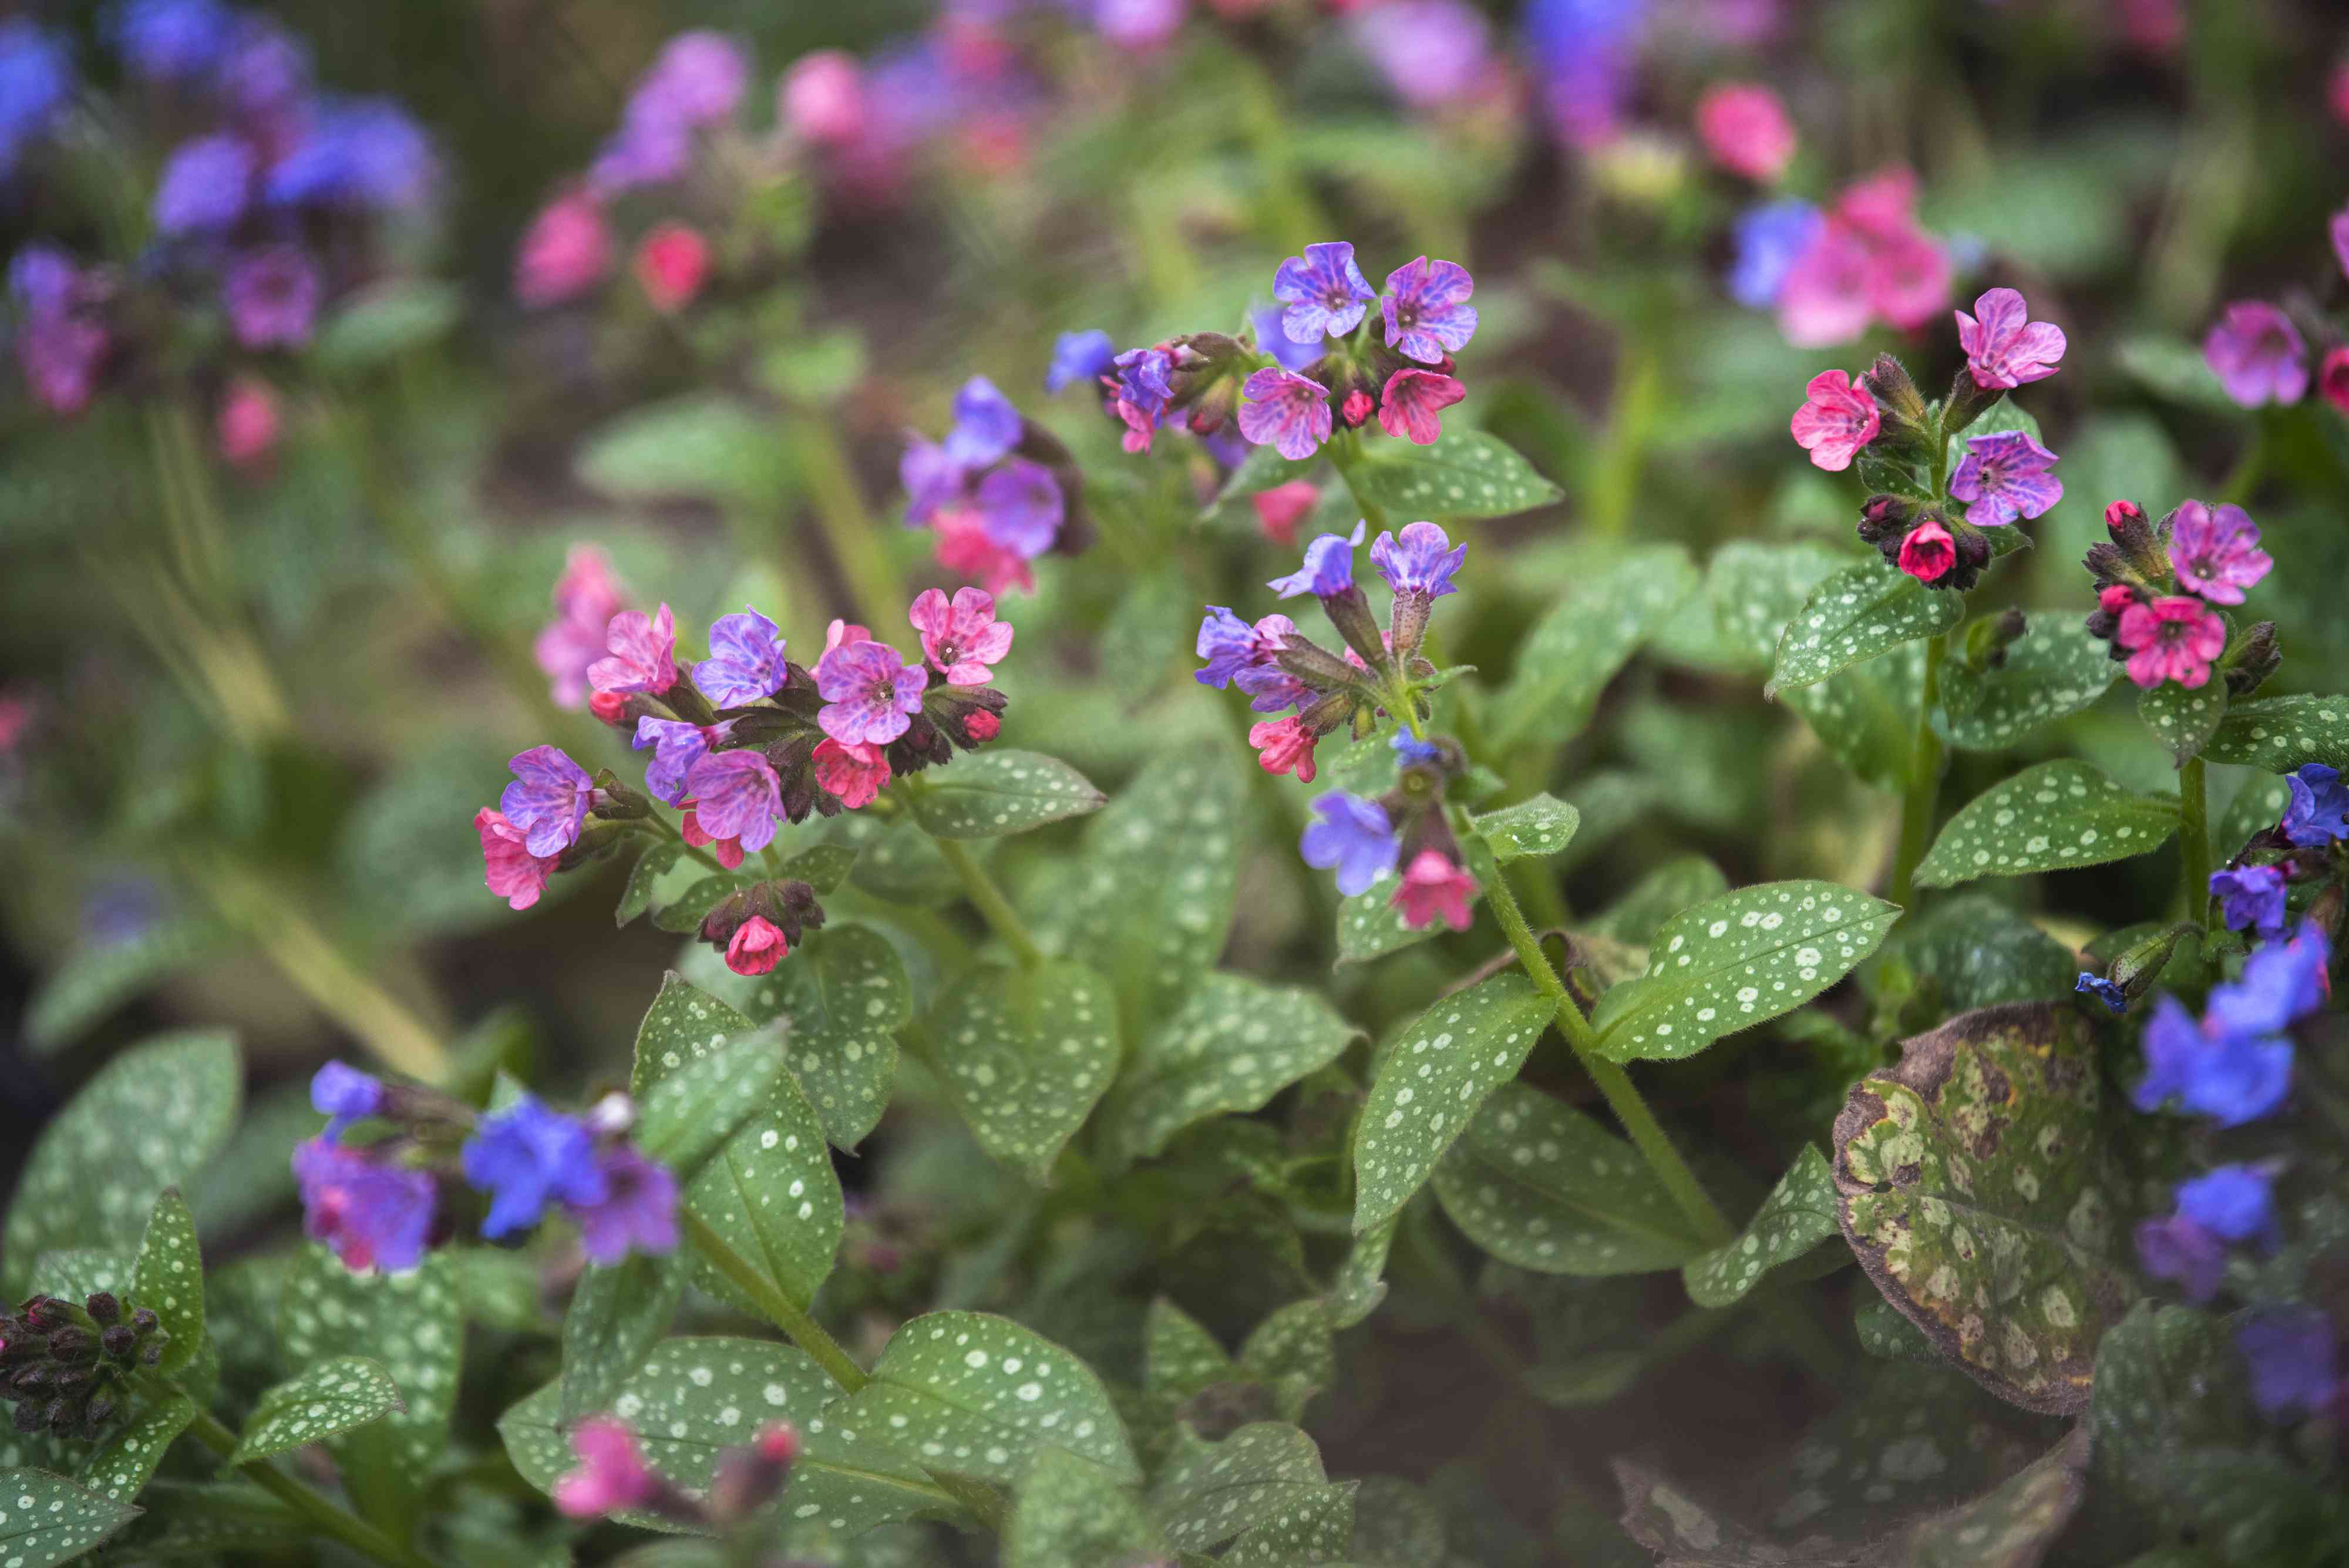 Lungwort perennial plant with spotted leaves and small pink and purple flowers